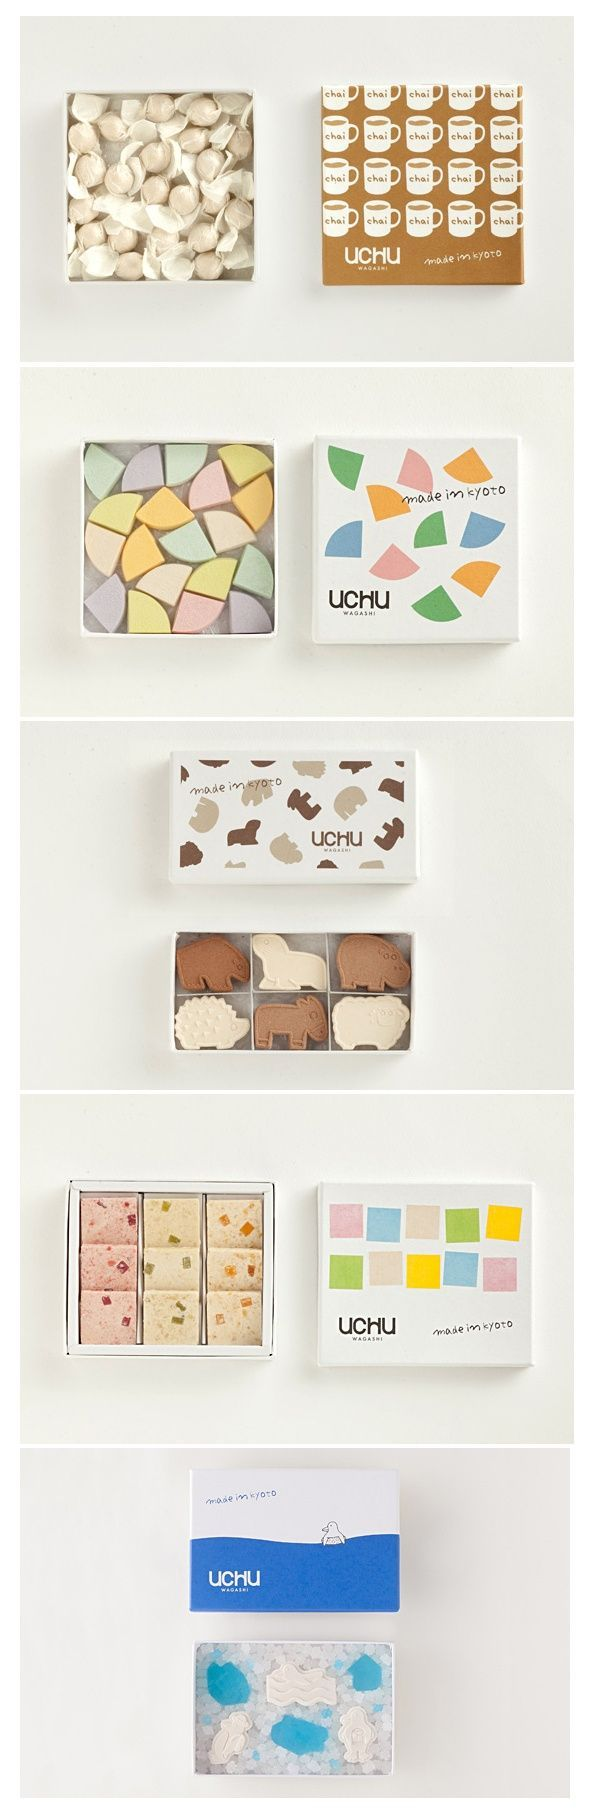 When you take ideas form packaging and convert it into gift wrapping- ideas running on mind.